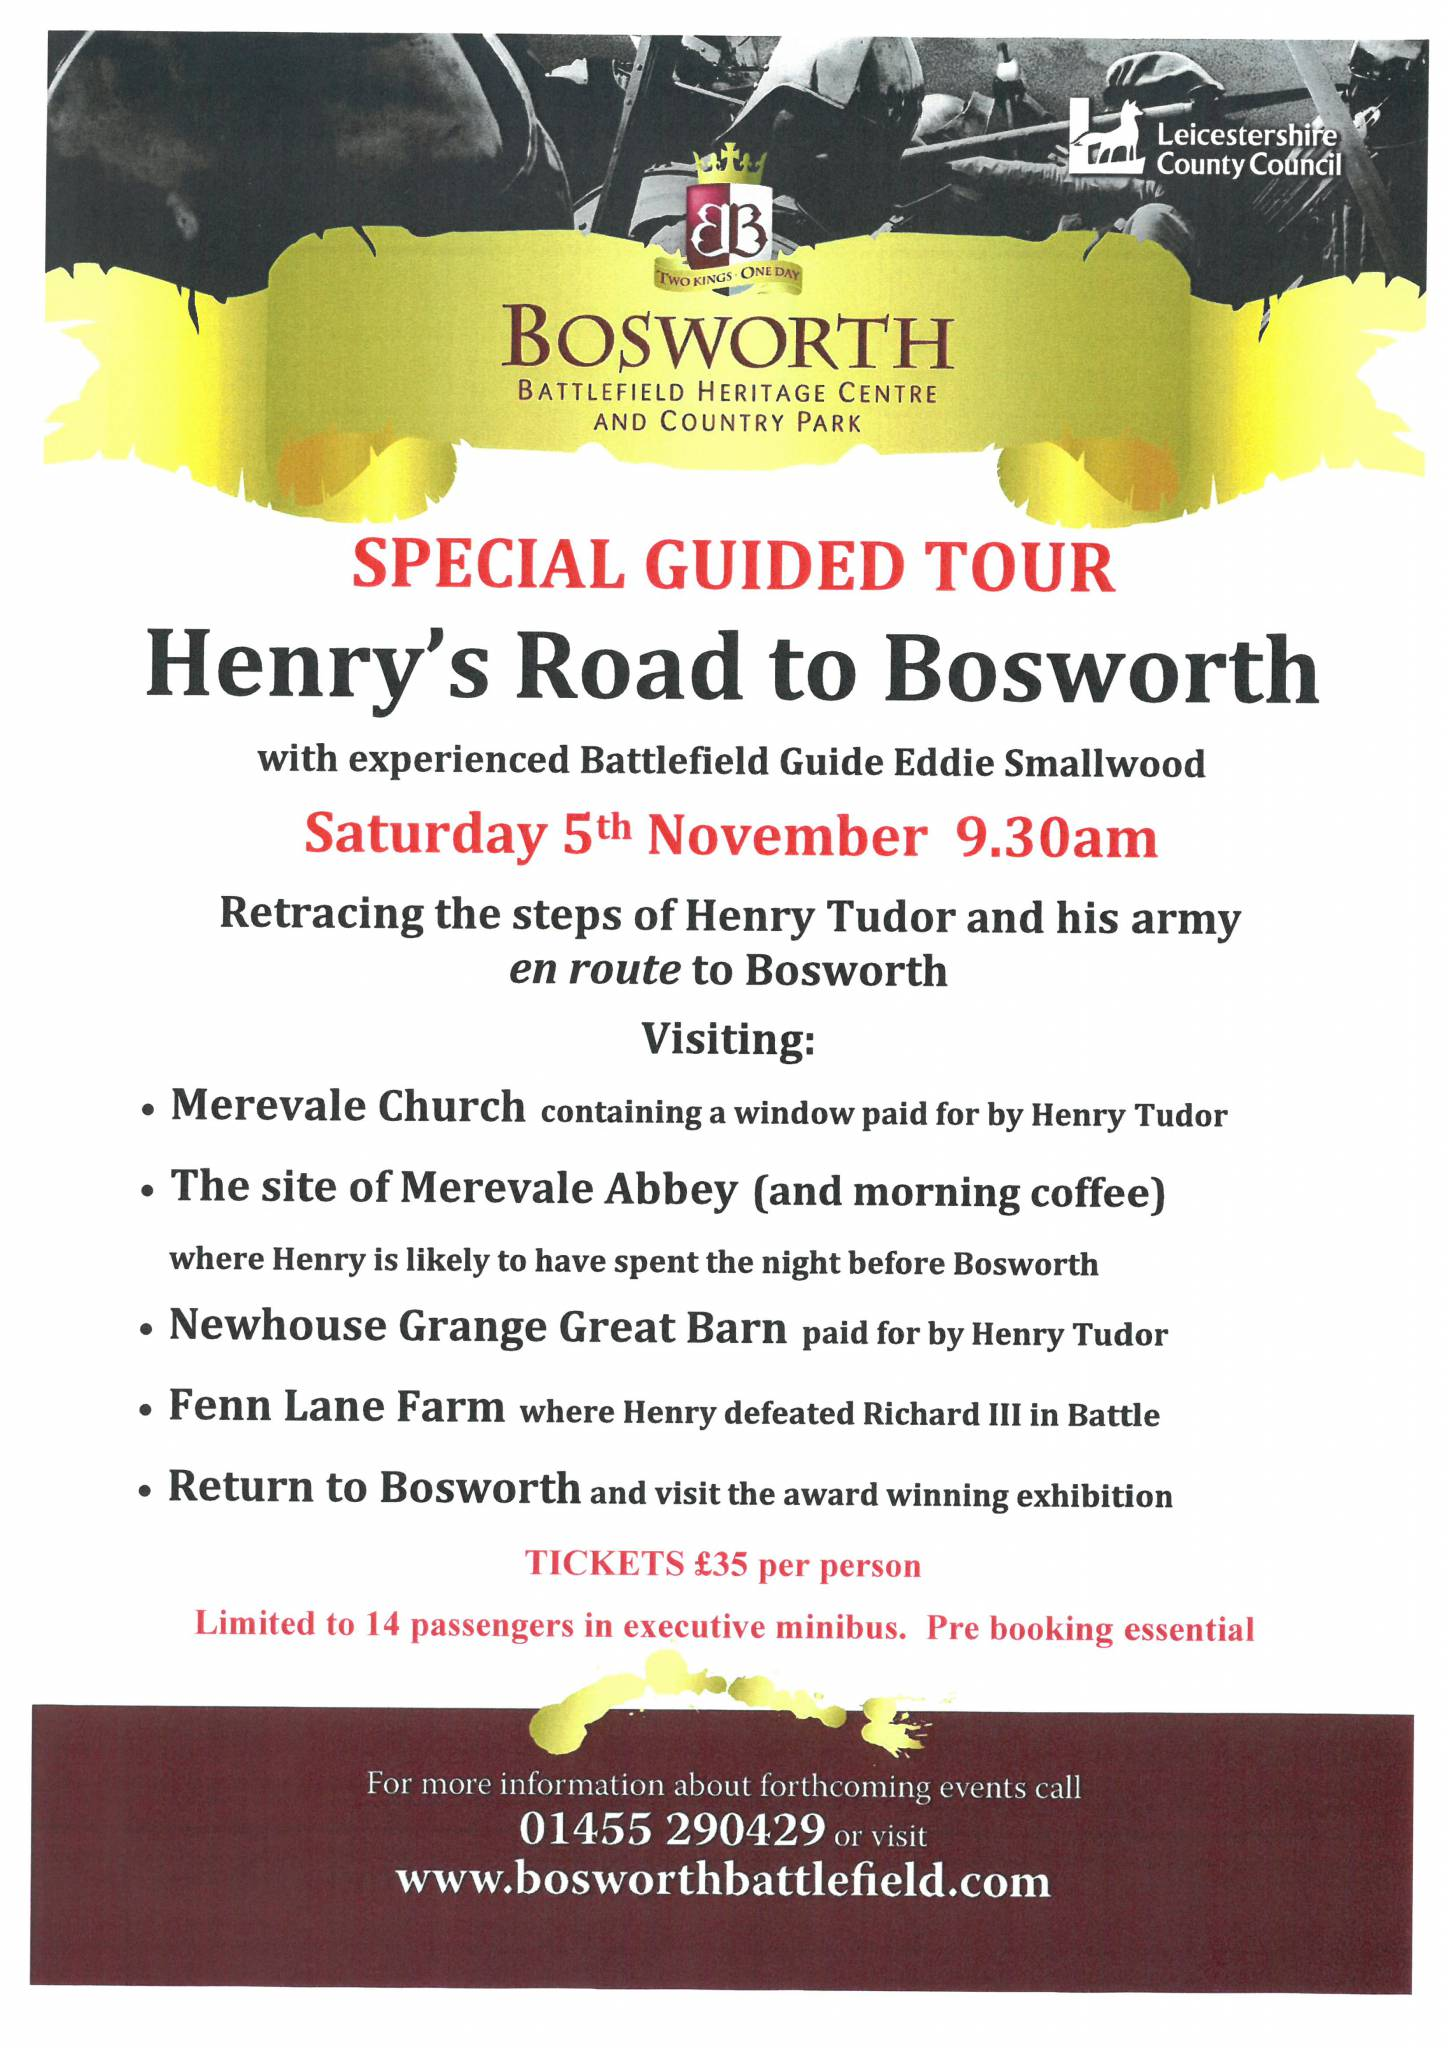 Henry's Road to Bosworth